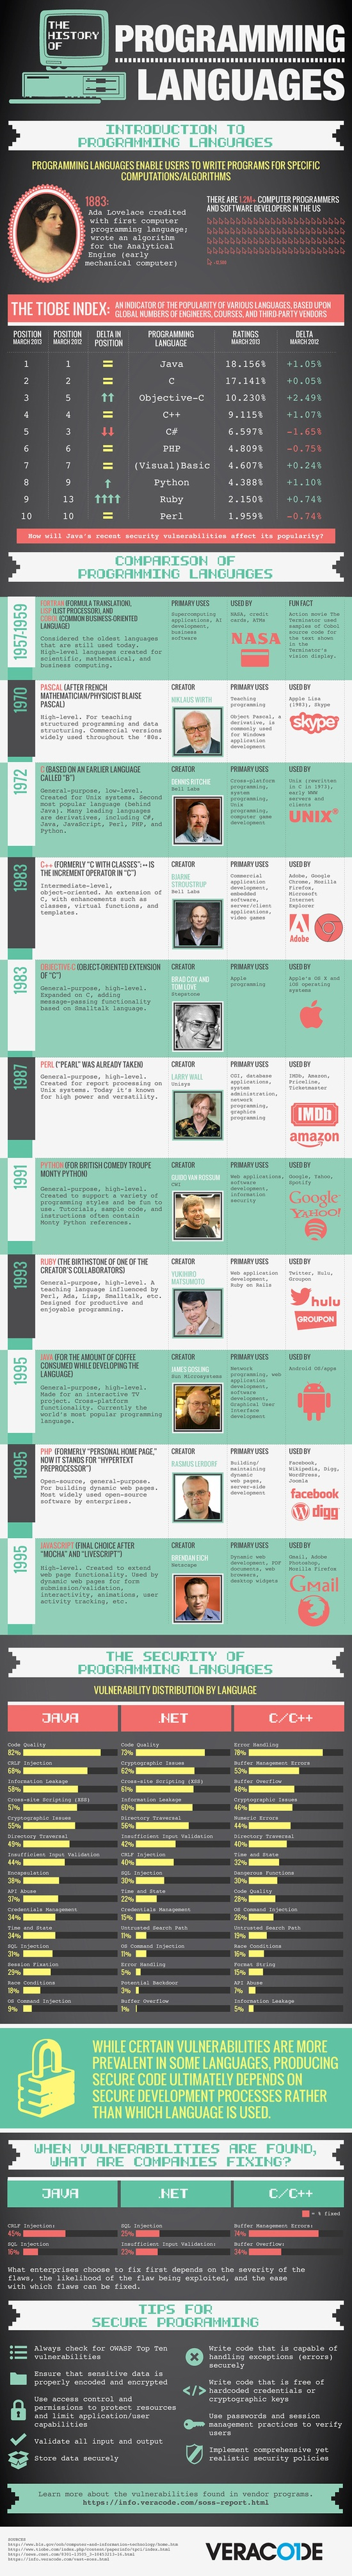 A brief comparison of popular programming languages